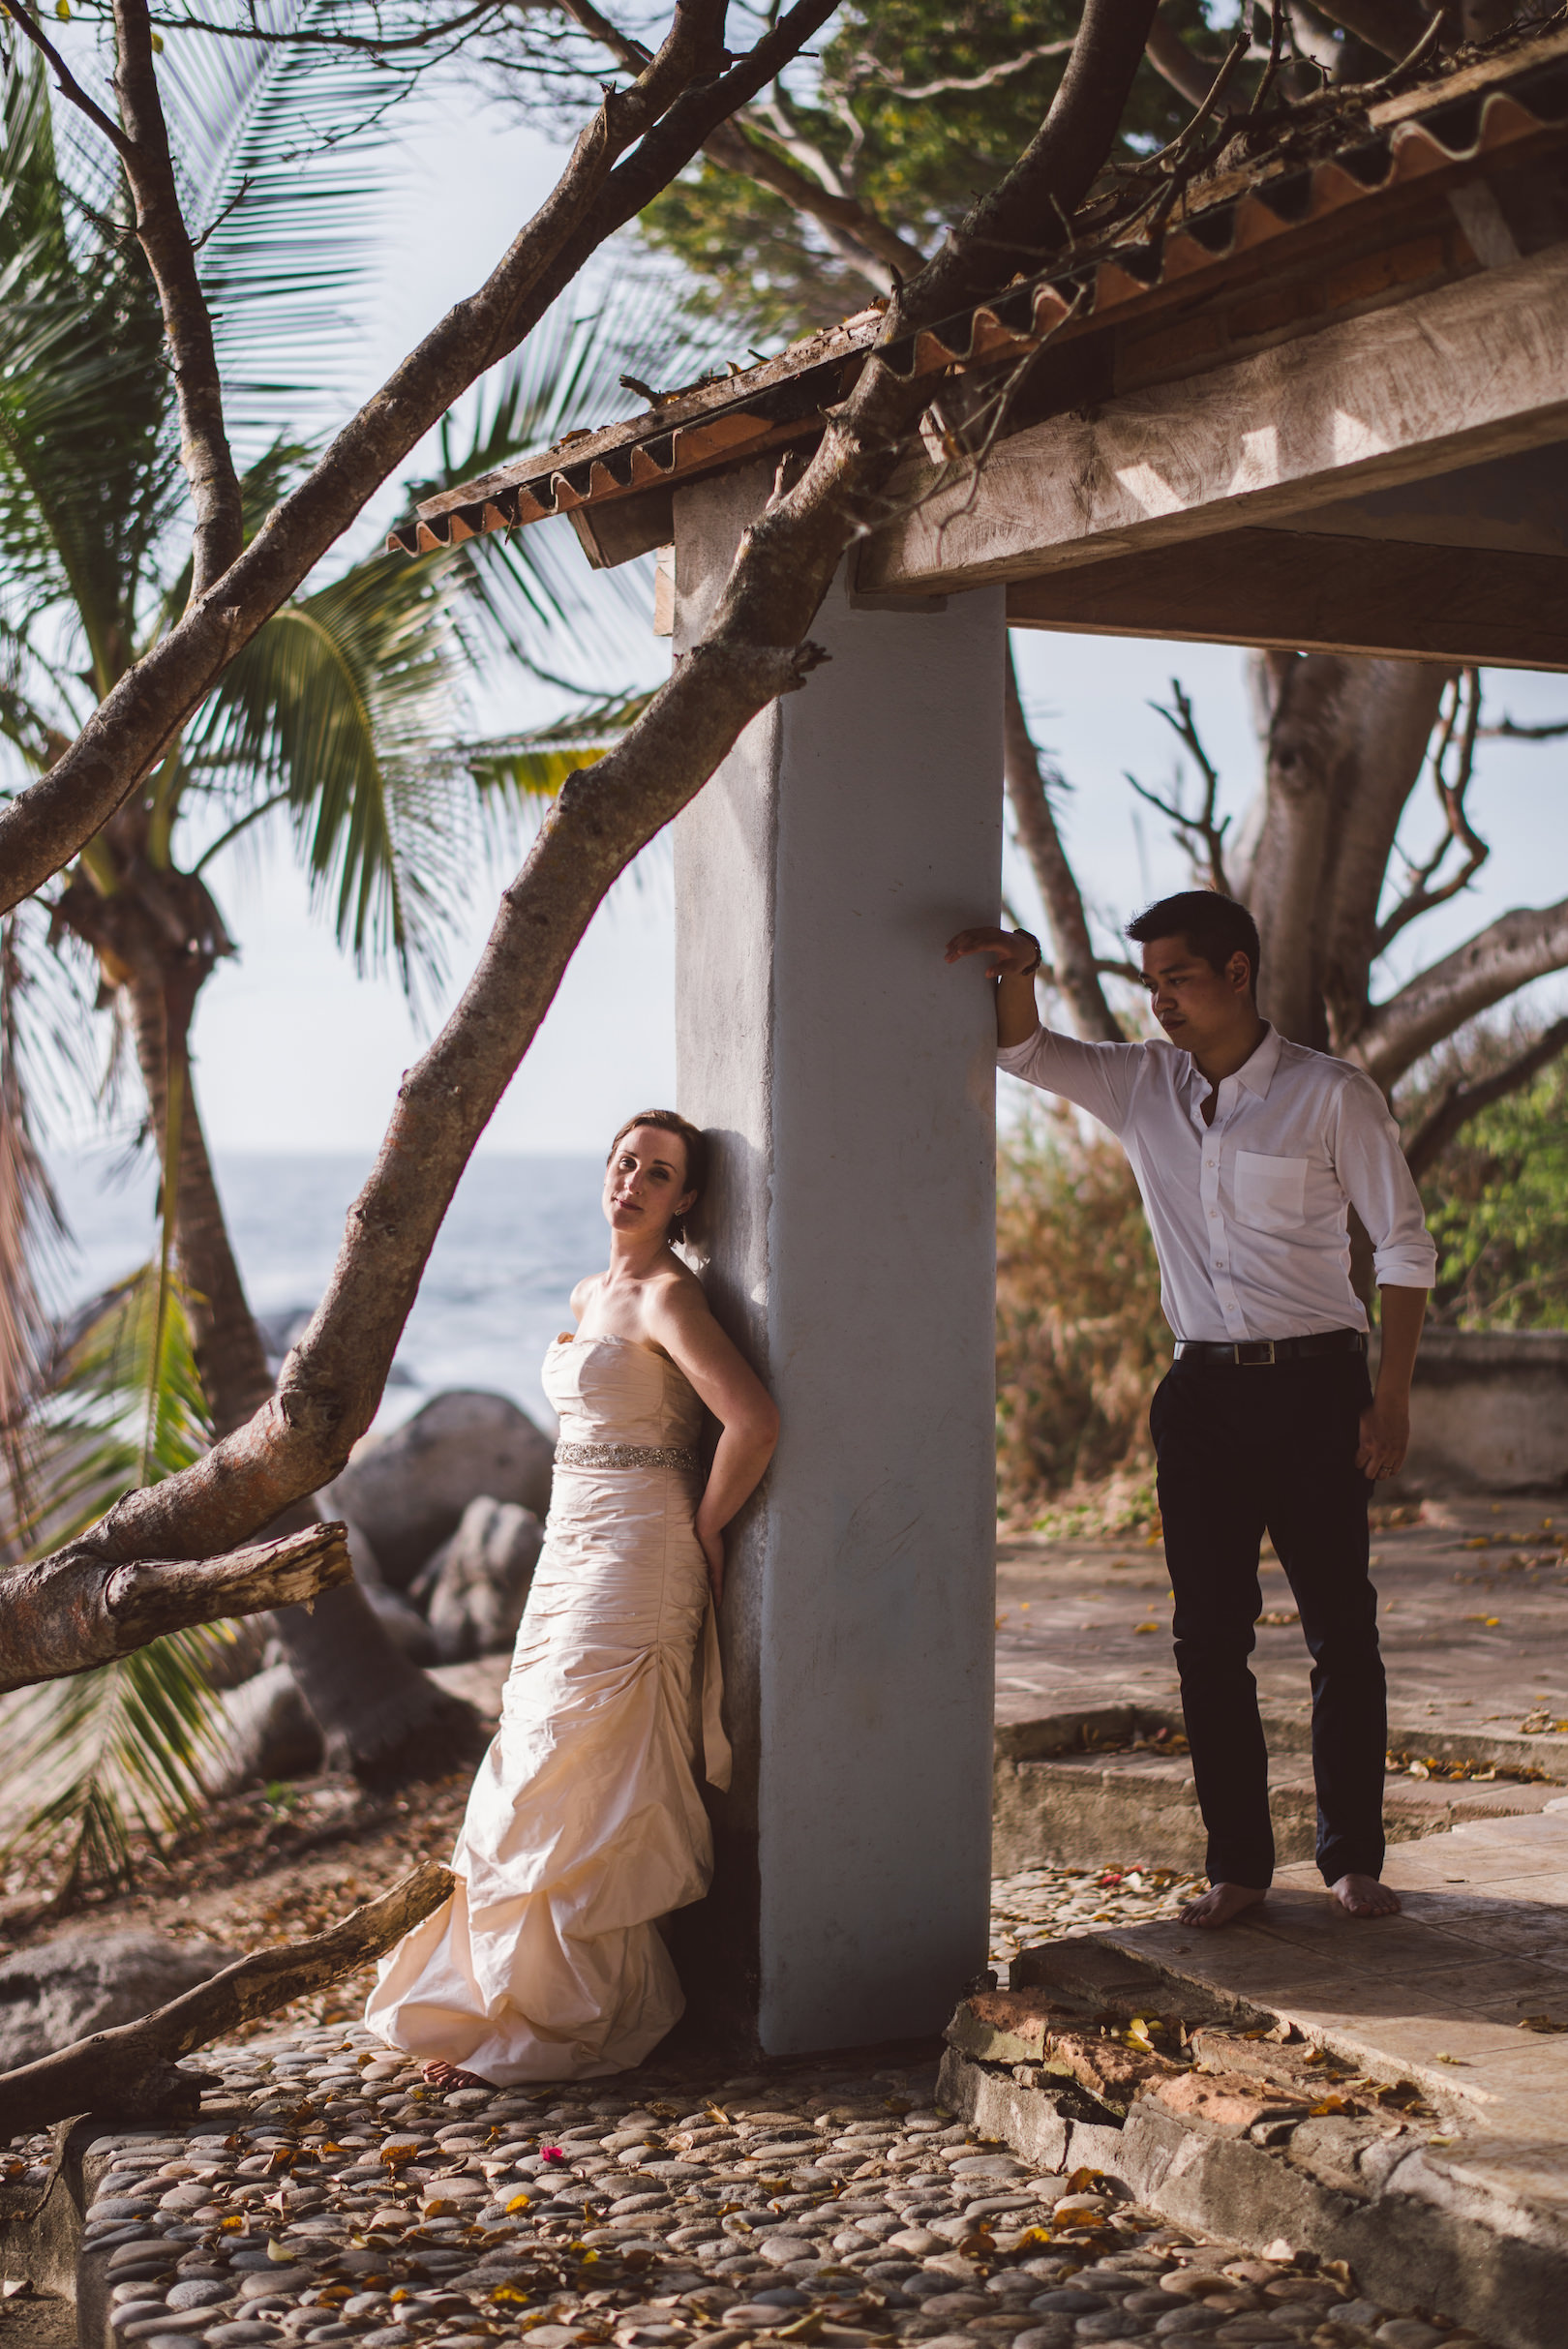 Steve & Mika - Sayulita - © Dallas Kolotylo Photography - 772